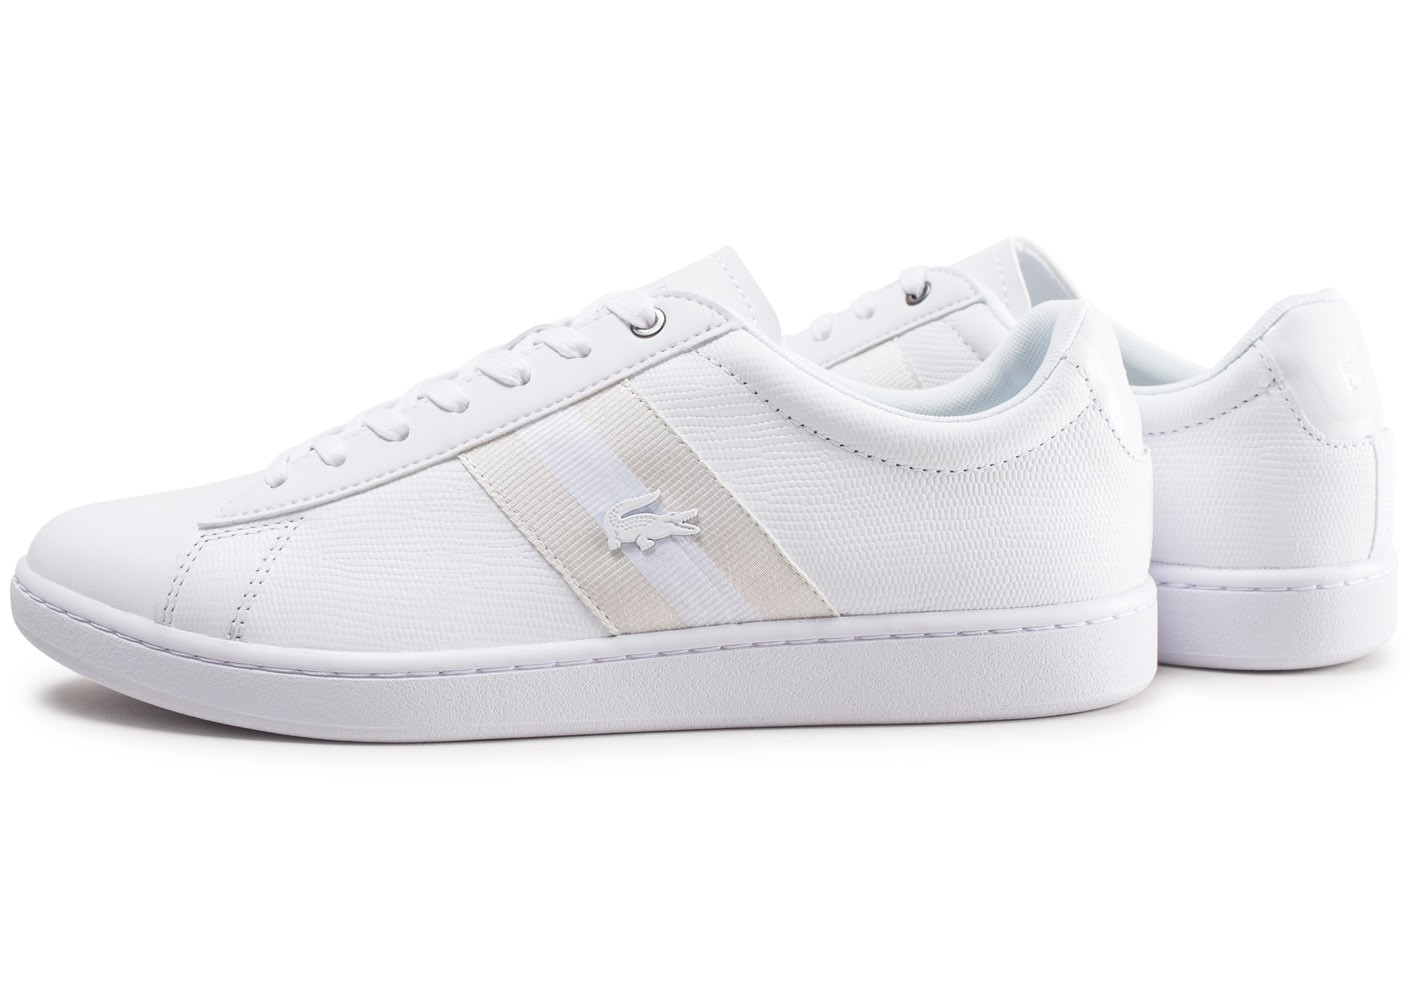 1cfbd3b371 Baskets Lacoste Evo Blanche Chaussures Chausport Carnaby Homme iTOkXZuP